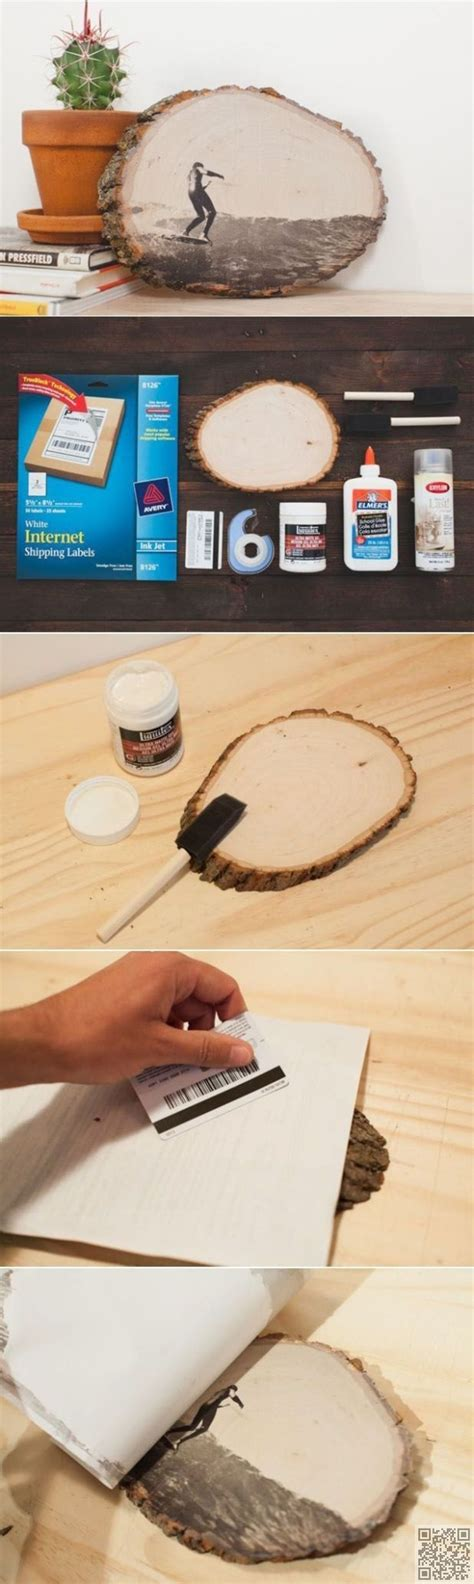 transfer paper for wood walmart woodworking plans and 5 try transferring your best prints onto wood 26 of